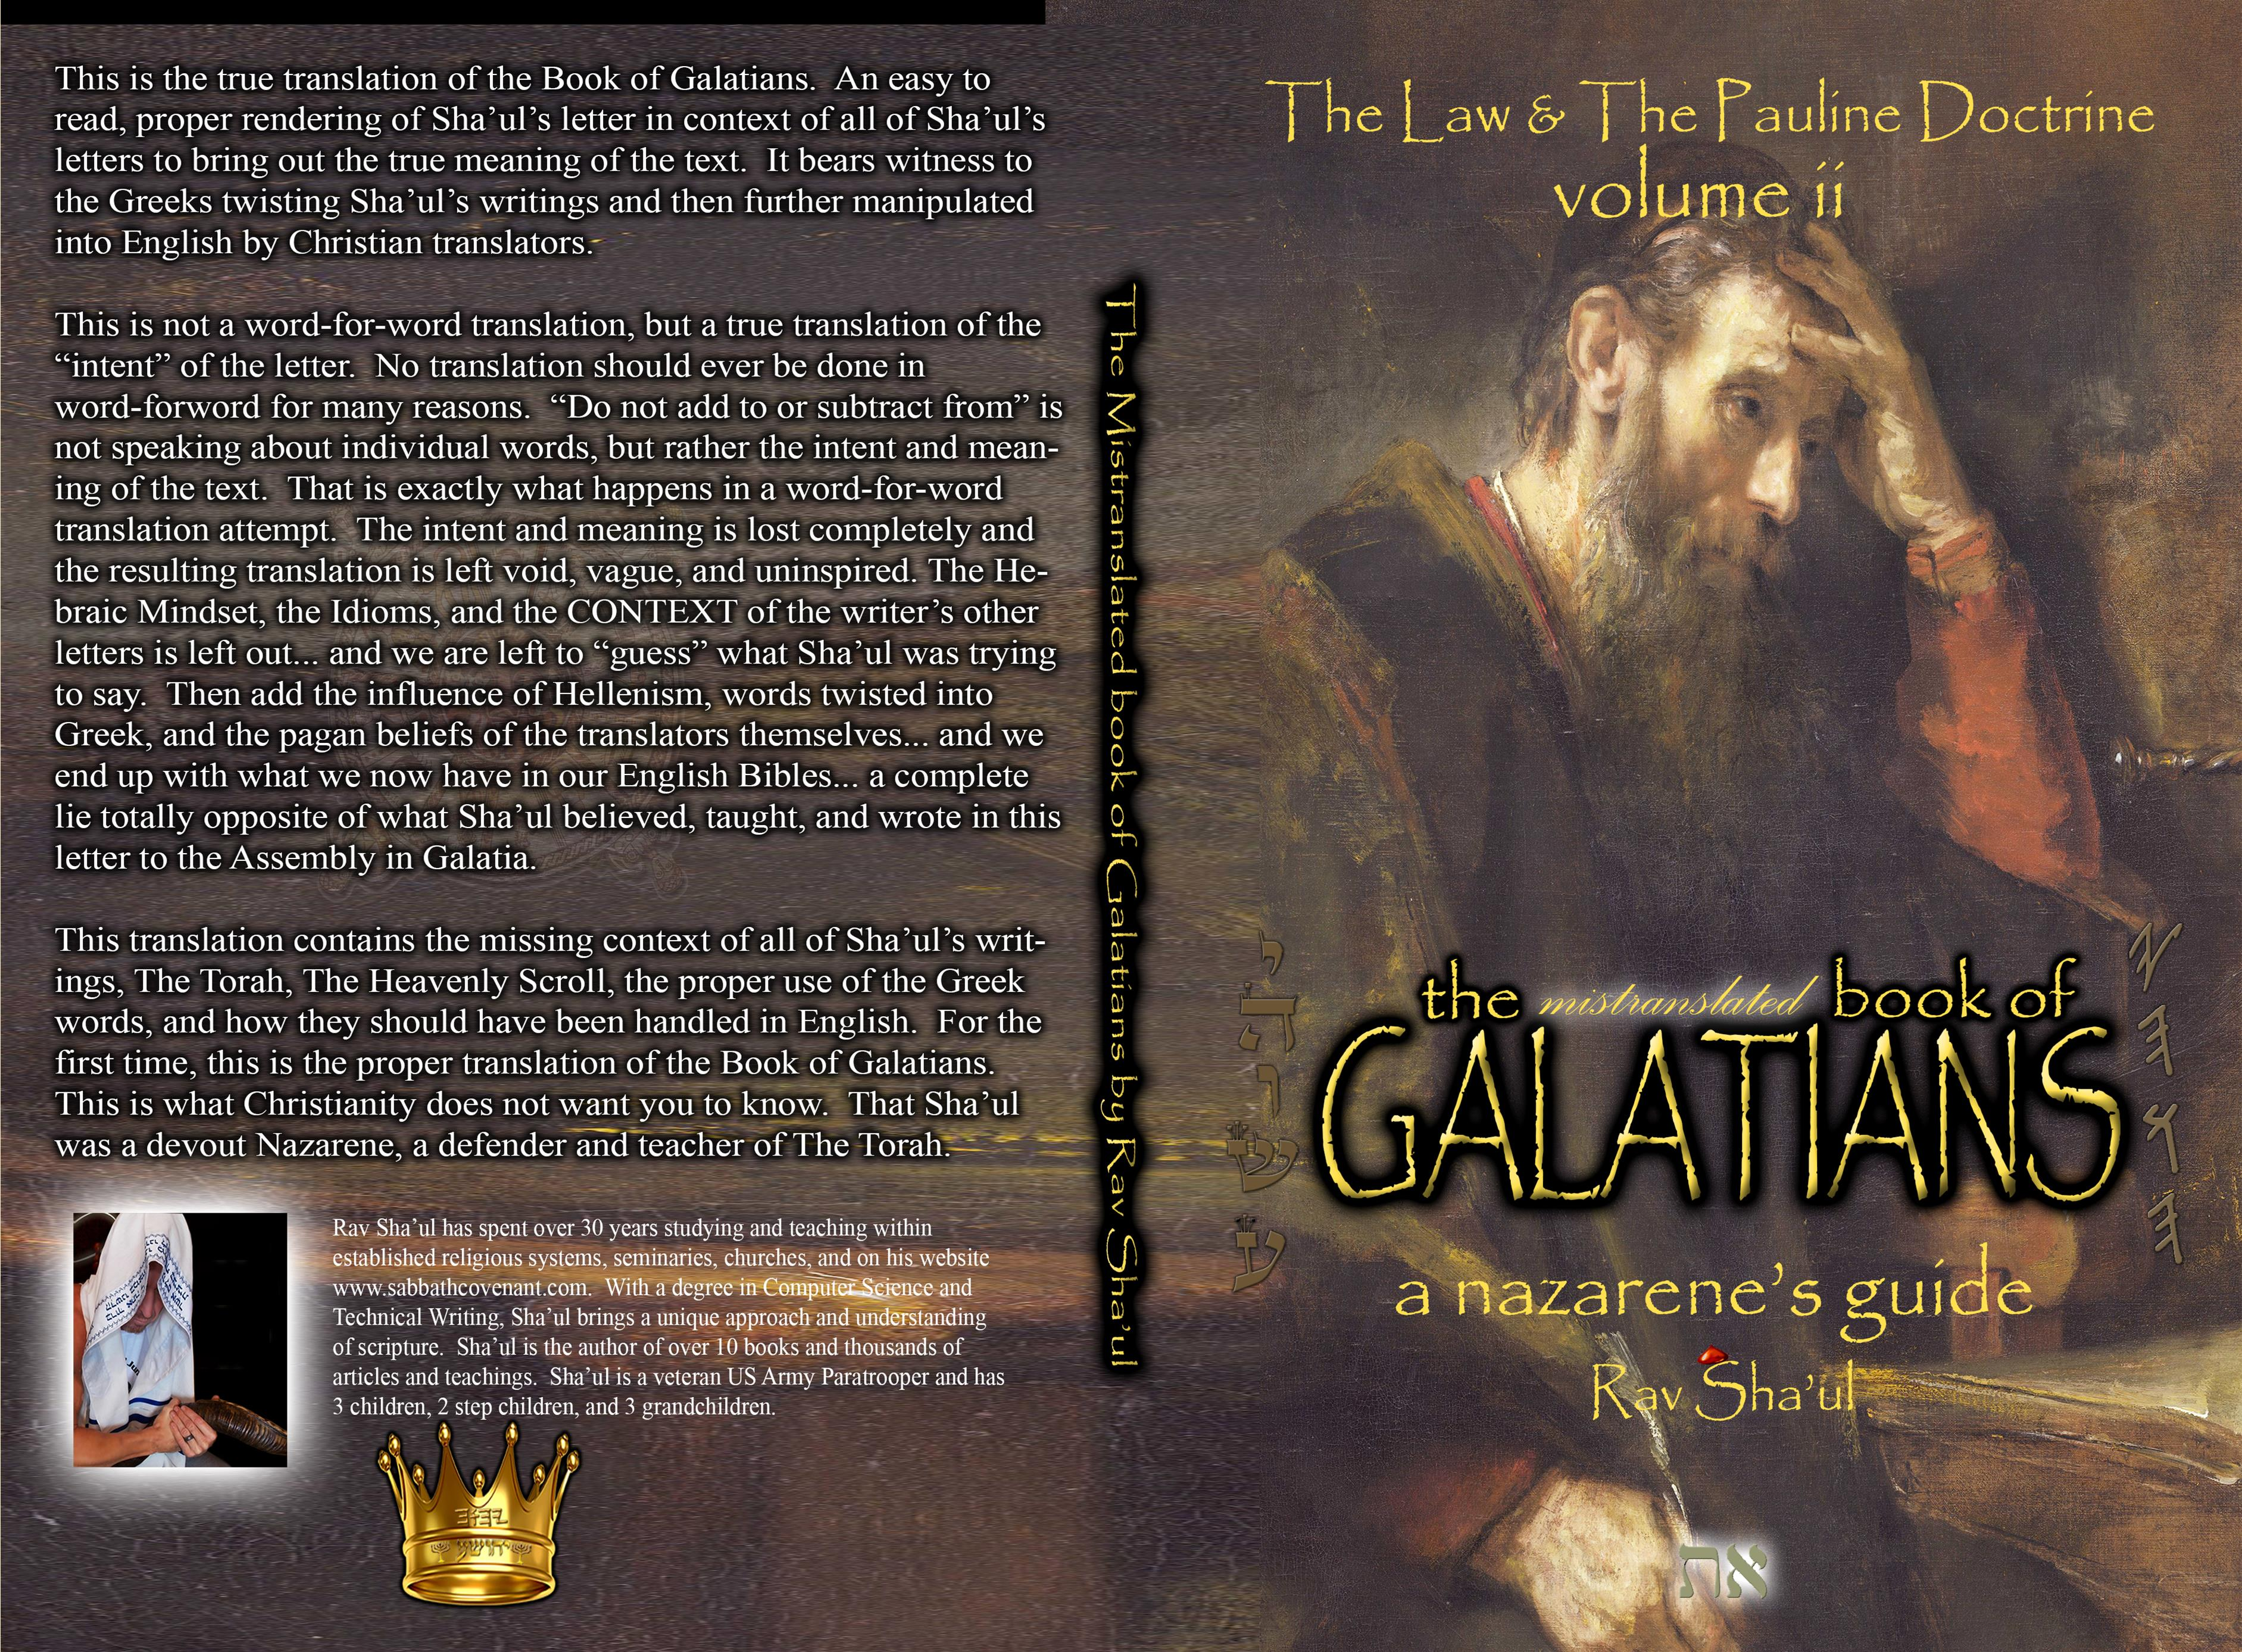 The Mistranslated Book of Galatians cover image